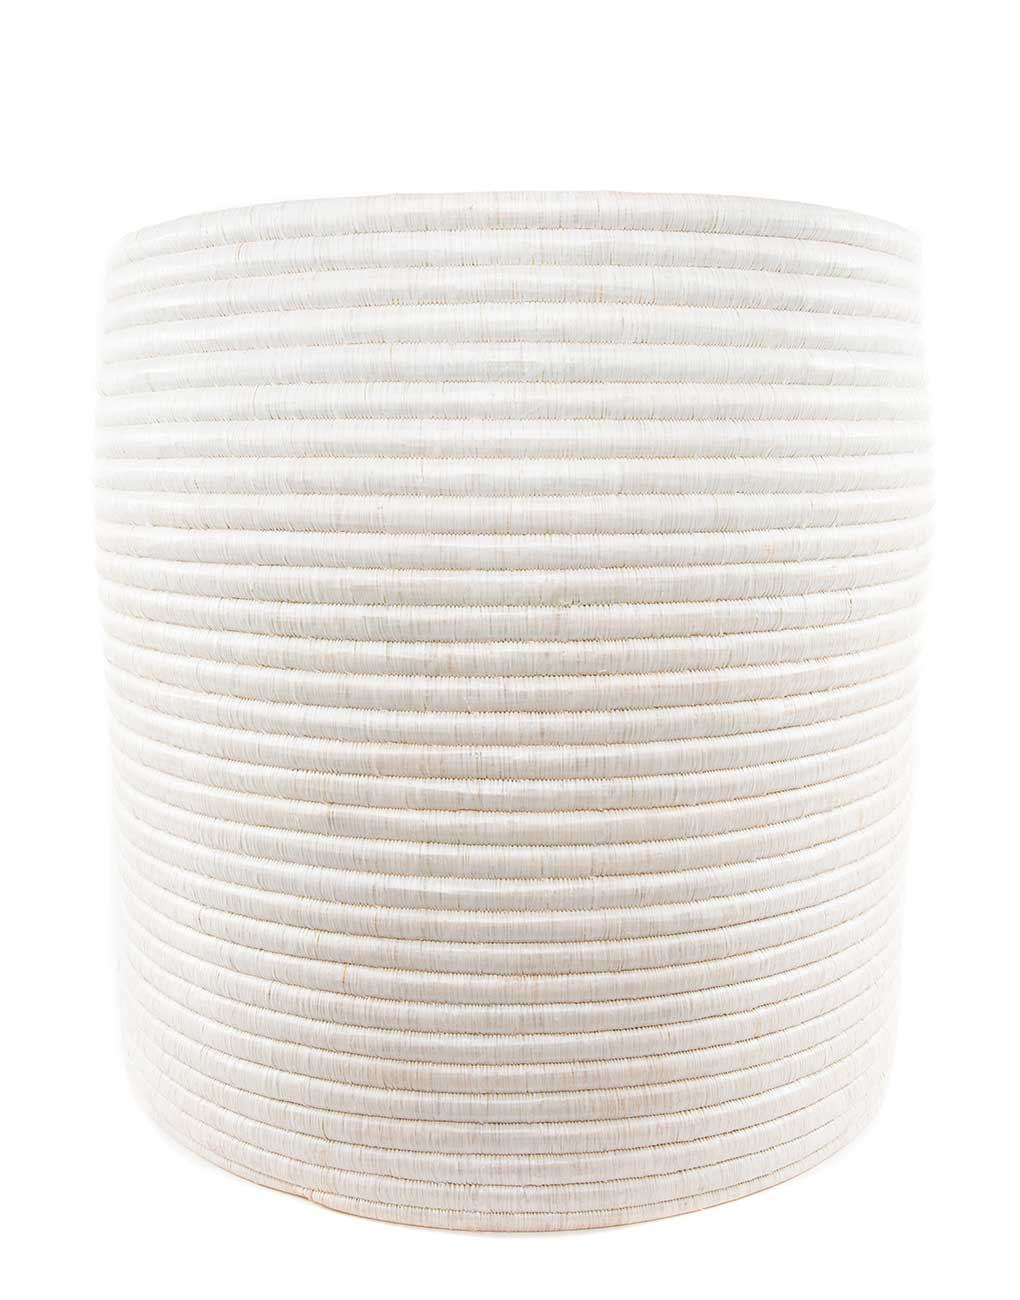 Extra Large White Round Woven Storage | The Little Market